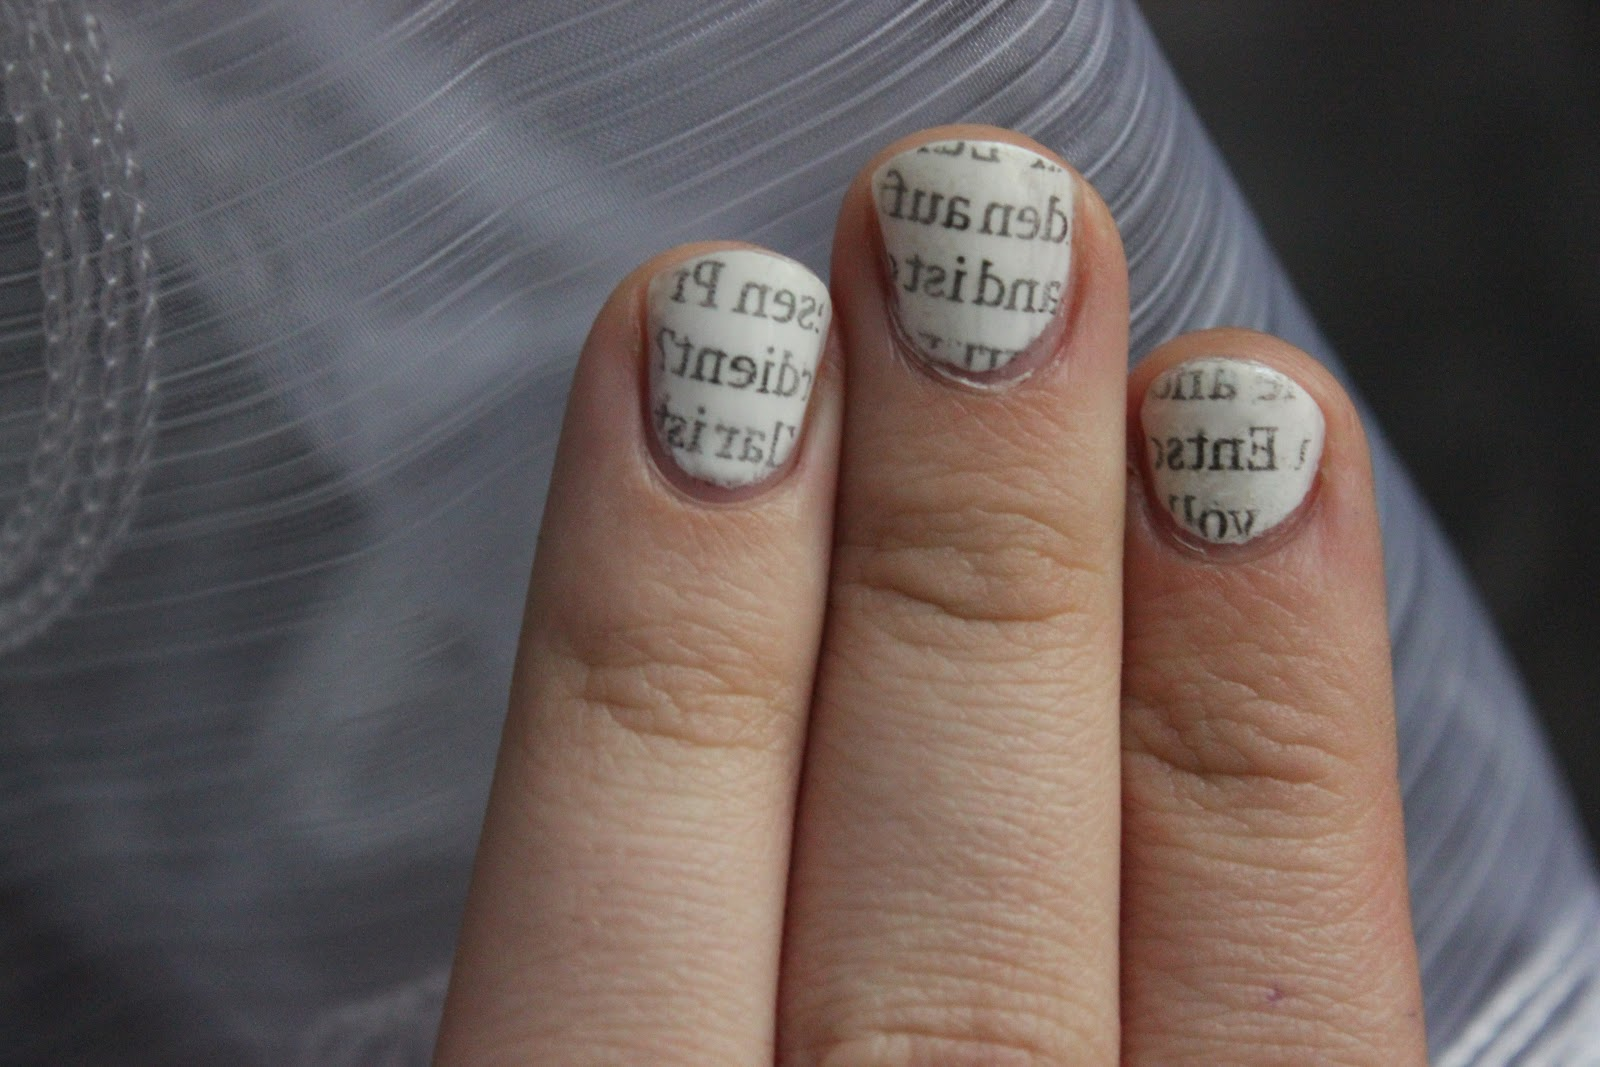 How to: Nail Art: Newspaper Print Nails ohne Alkohol - duftlos